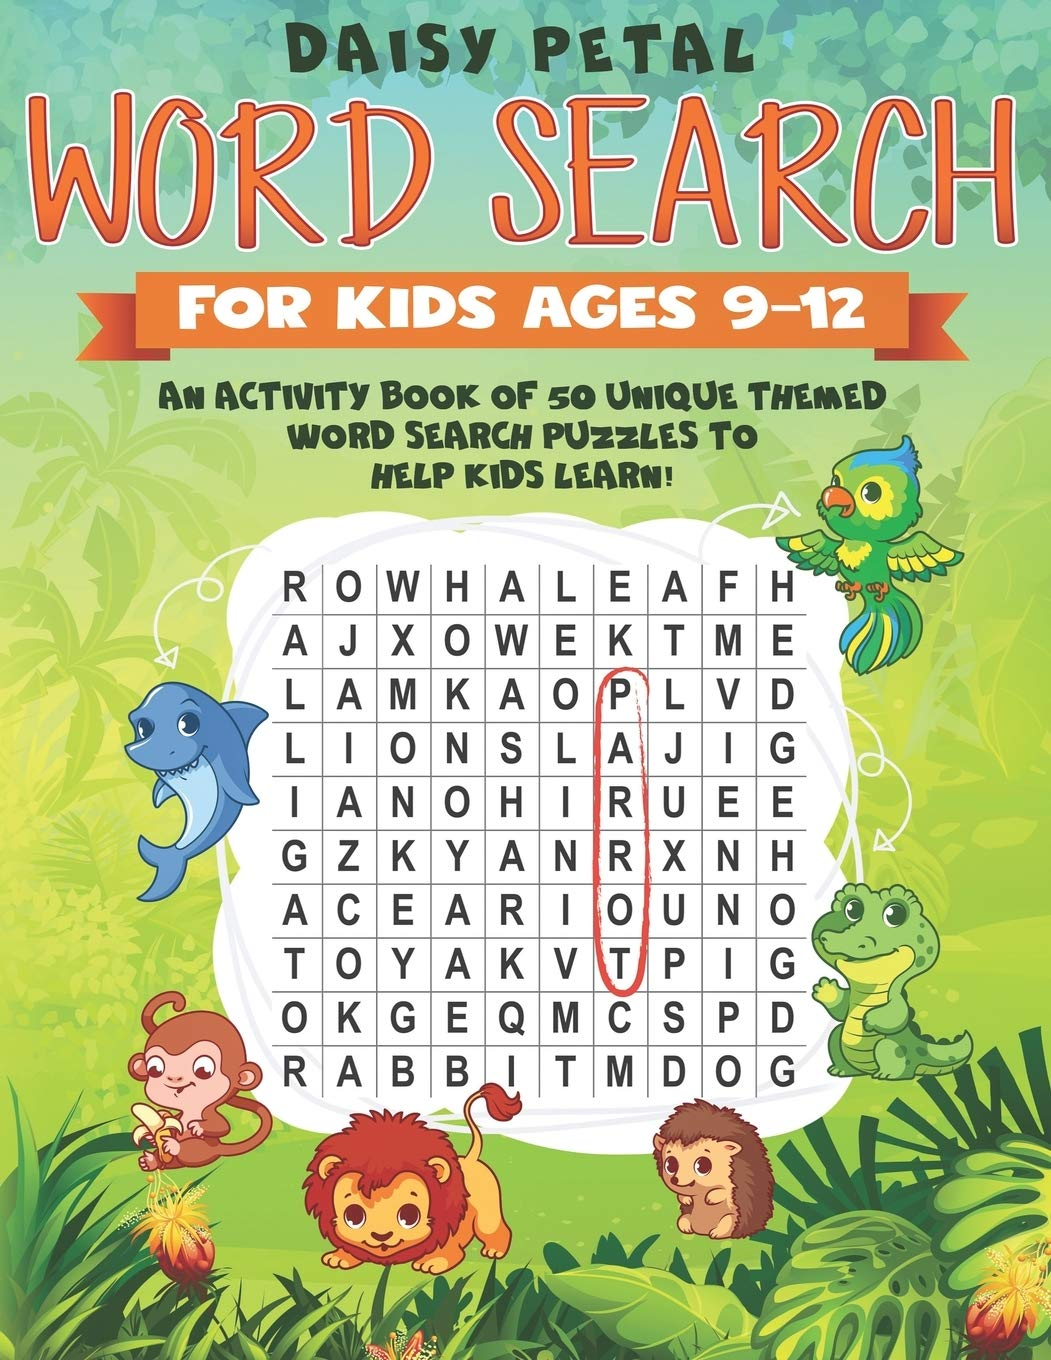 Word Search For Kids Ages 9 12  An Activity Book Of 50 Unique Themed Word Search Puzzles To Help Kids Learn